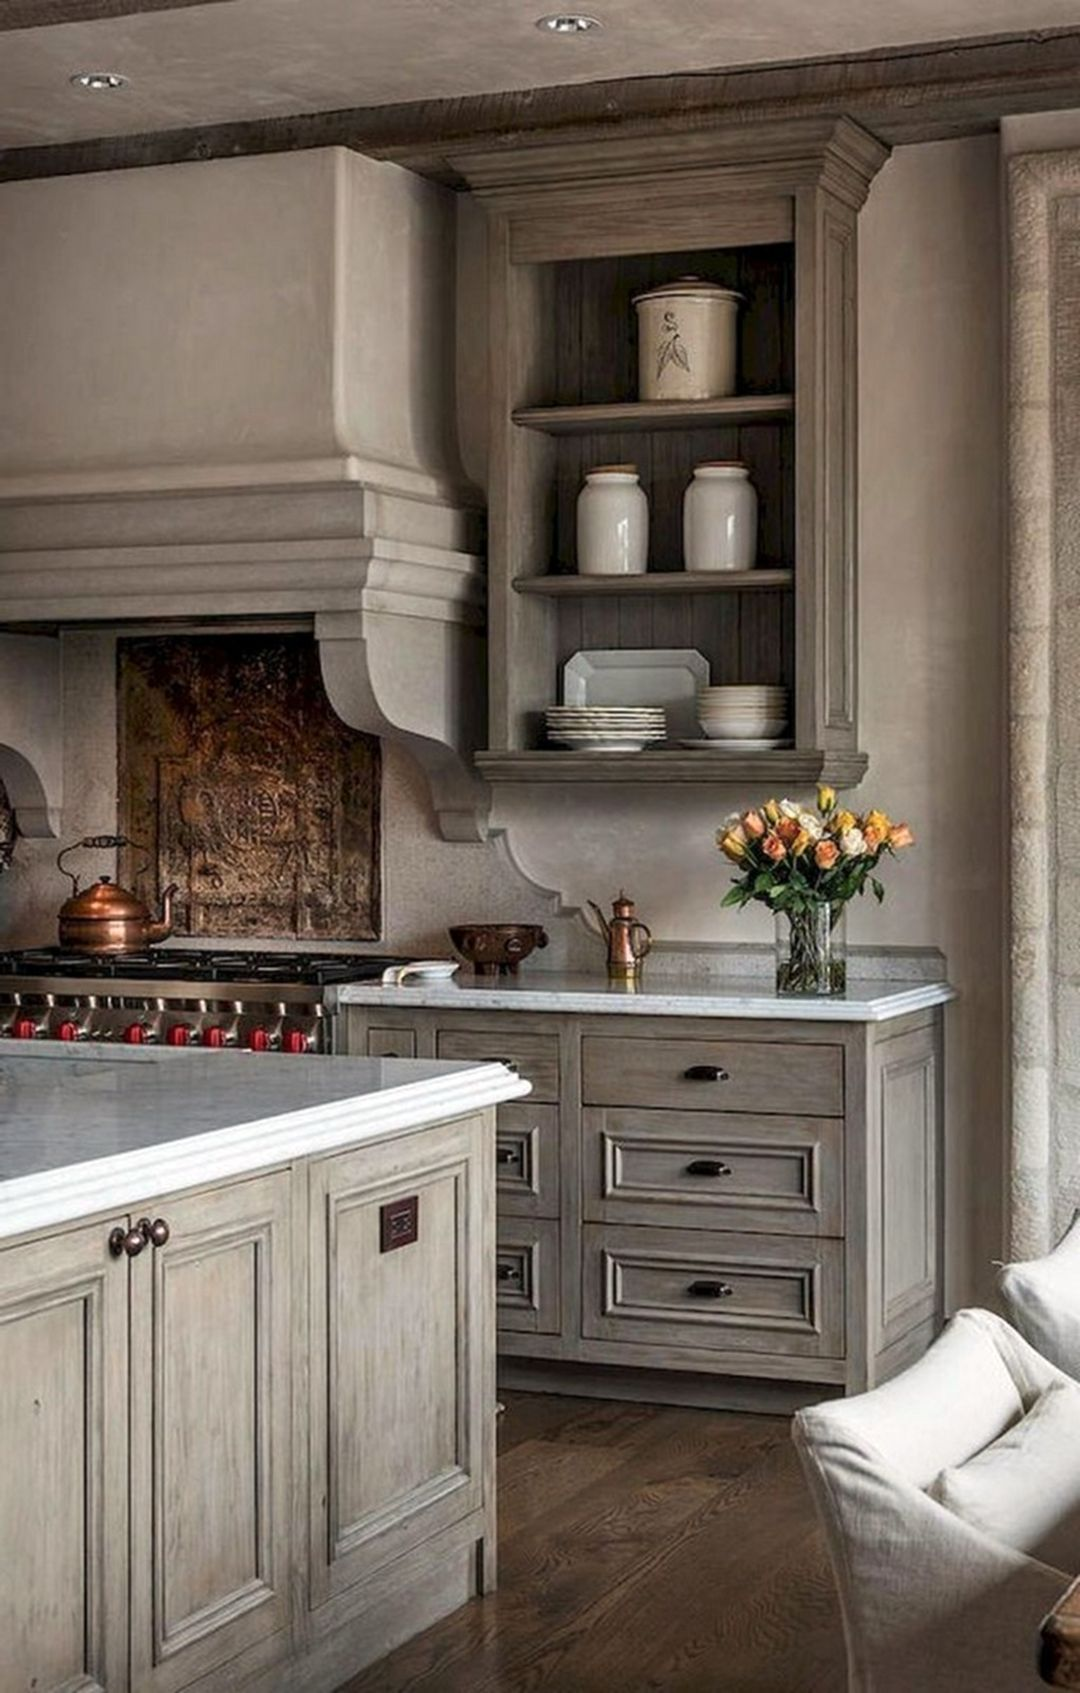 11 Elegant Modern Rustic Farmhouse Kitchen Ideas